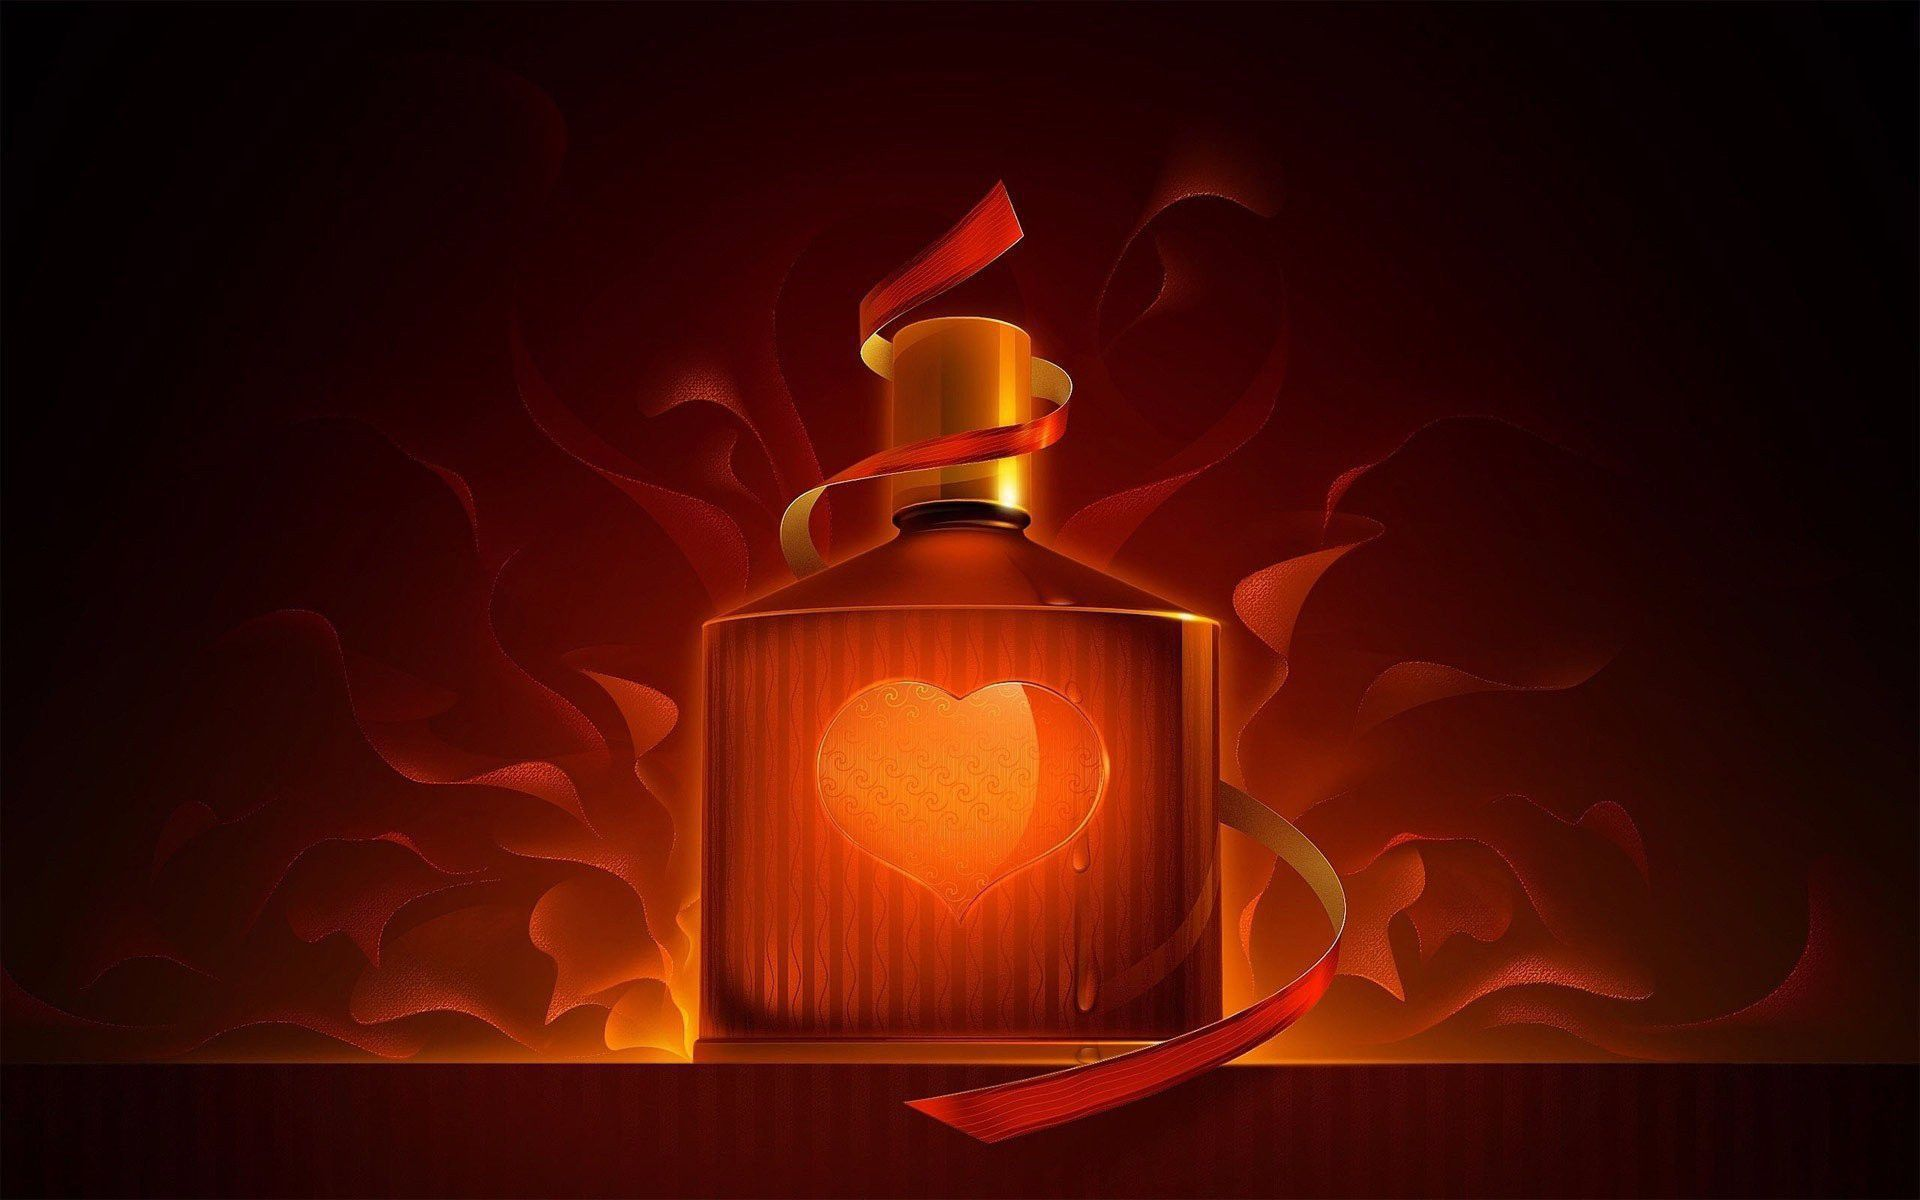 Burning Heart Wallpaper